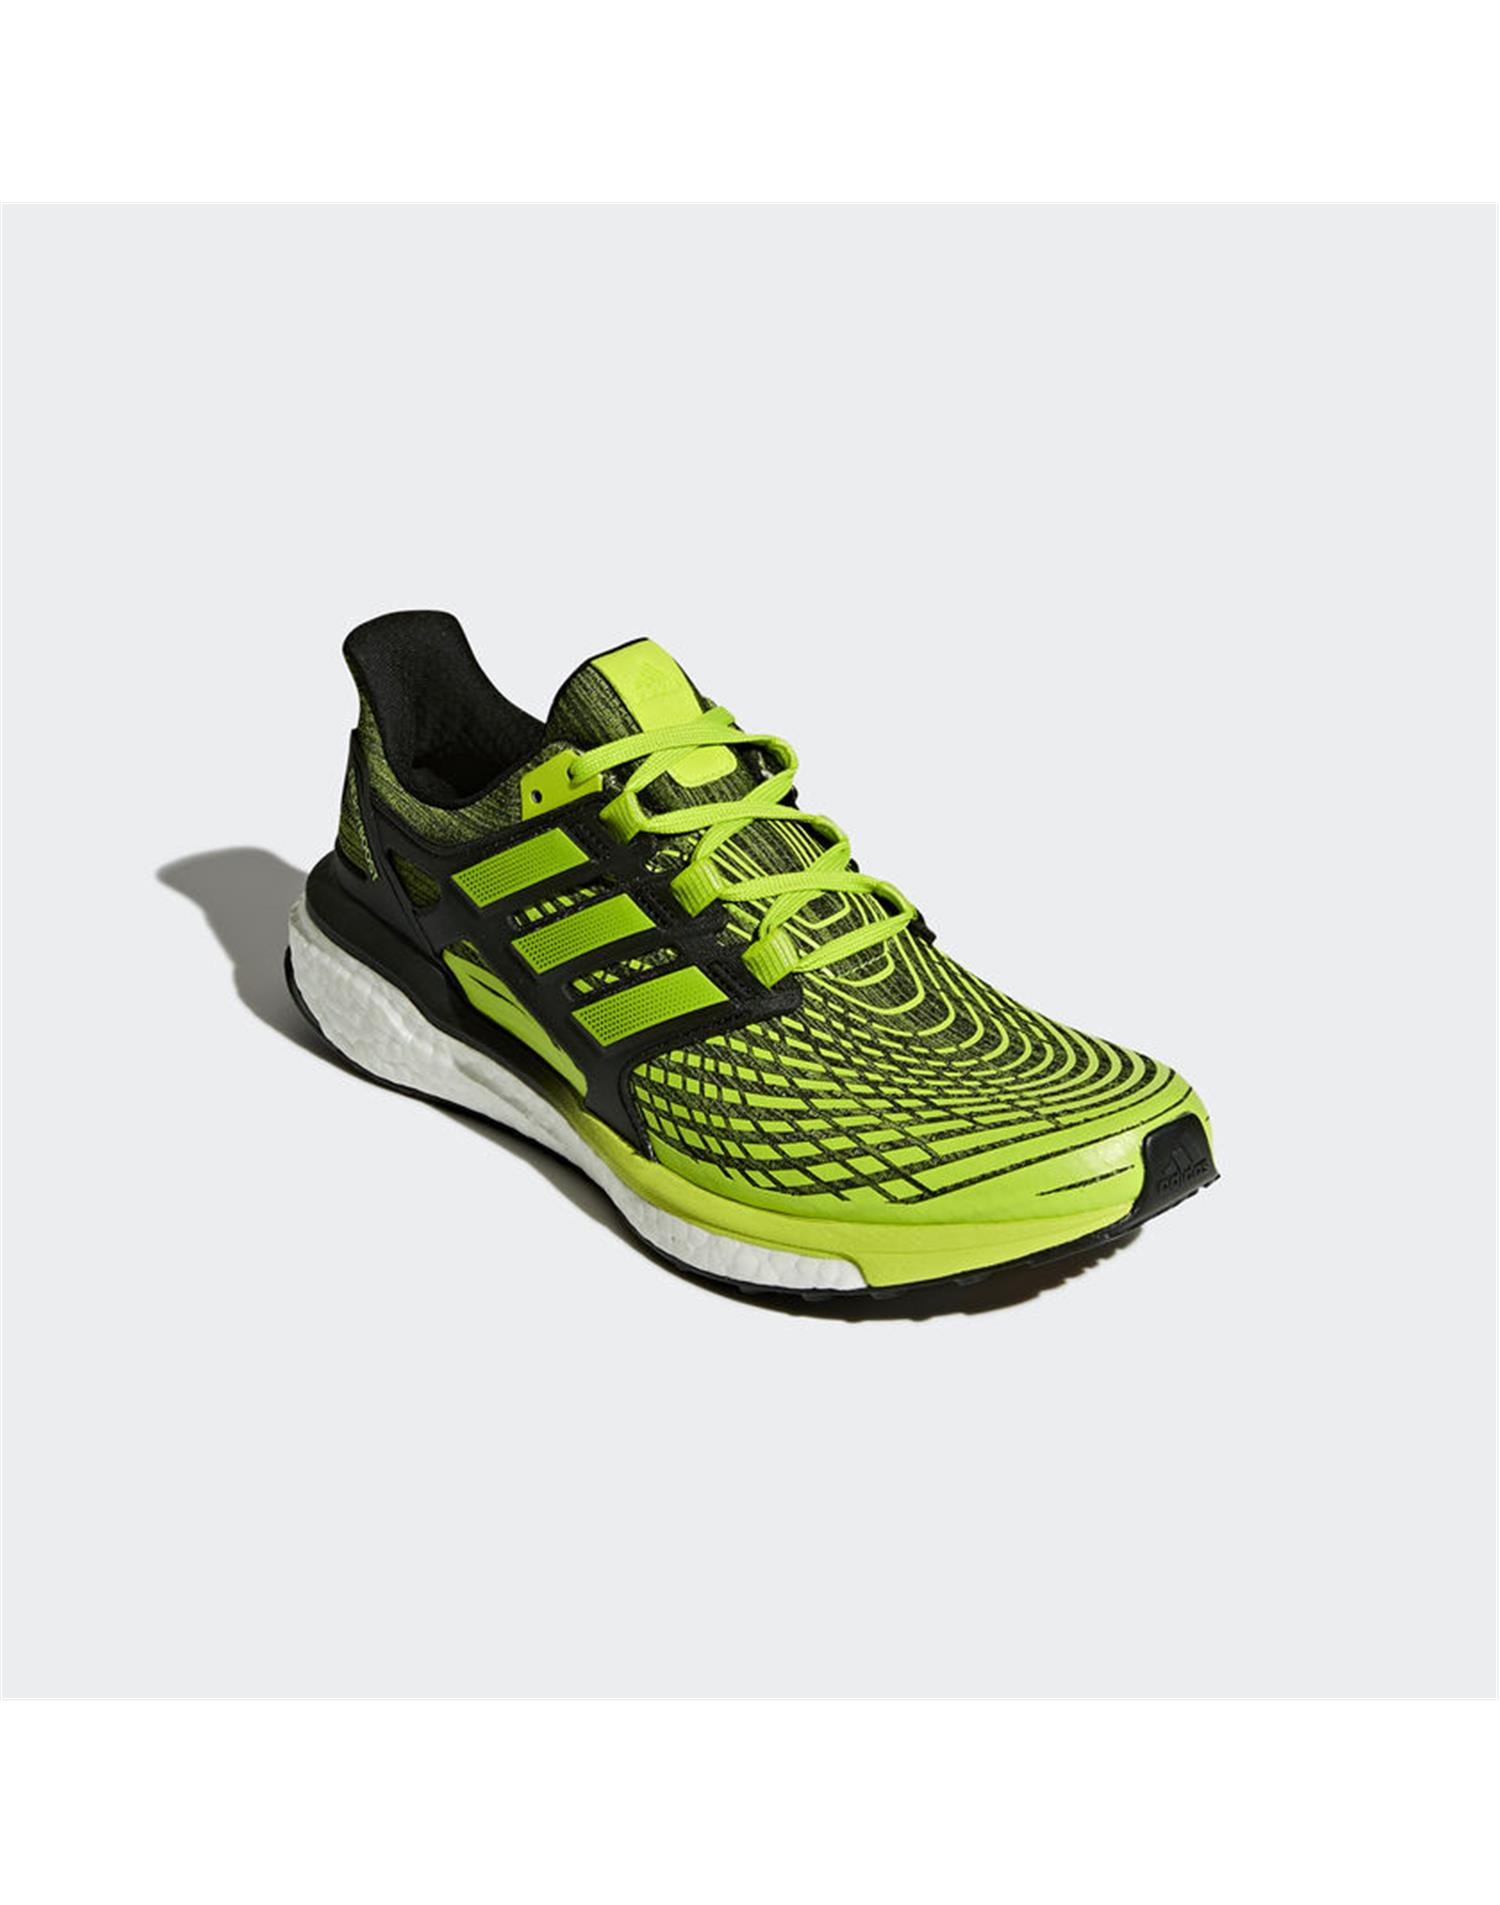 ADIDAS Scarpa Energy Boost M (44 - LIME - NERO)